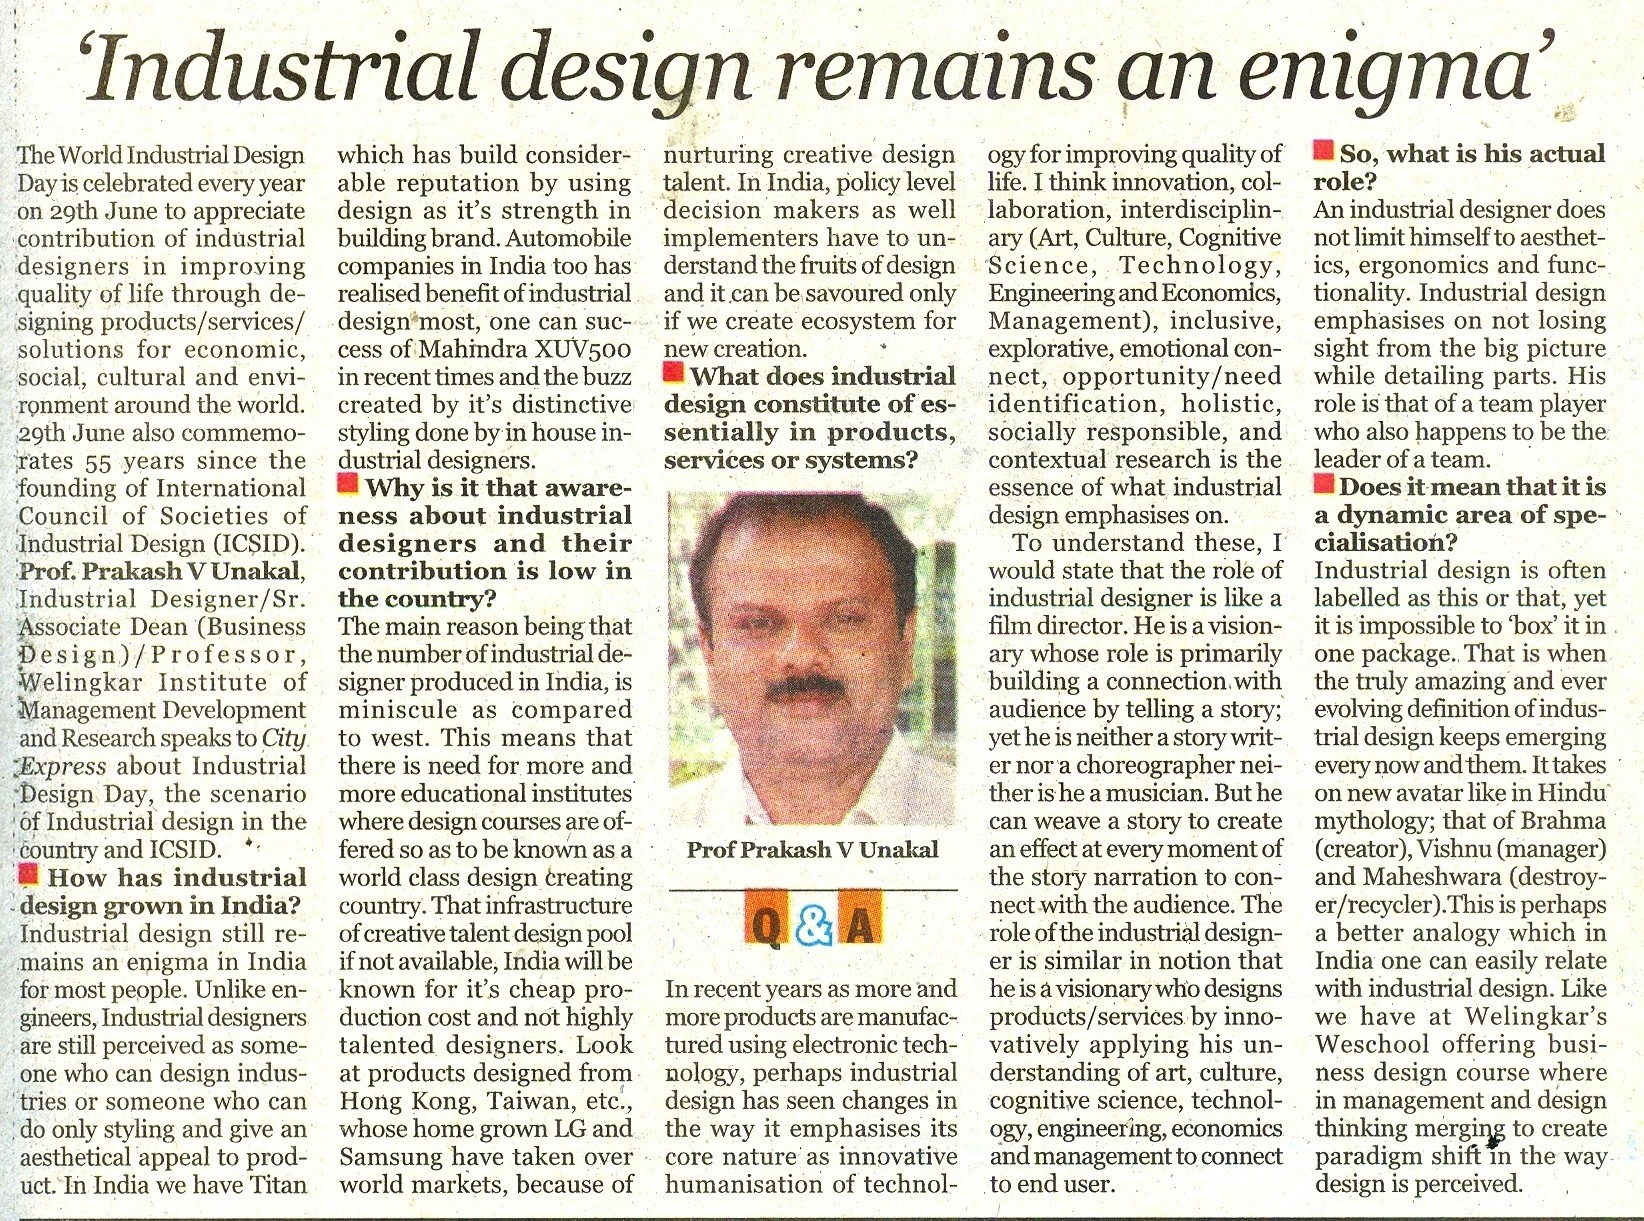 New definitions of Industrial Design are emerging every day...Prof Prakash Unakal of WeSchool spells out the paradigm shift in the environment on Industrial Design Day...